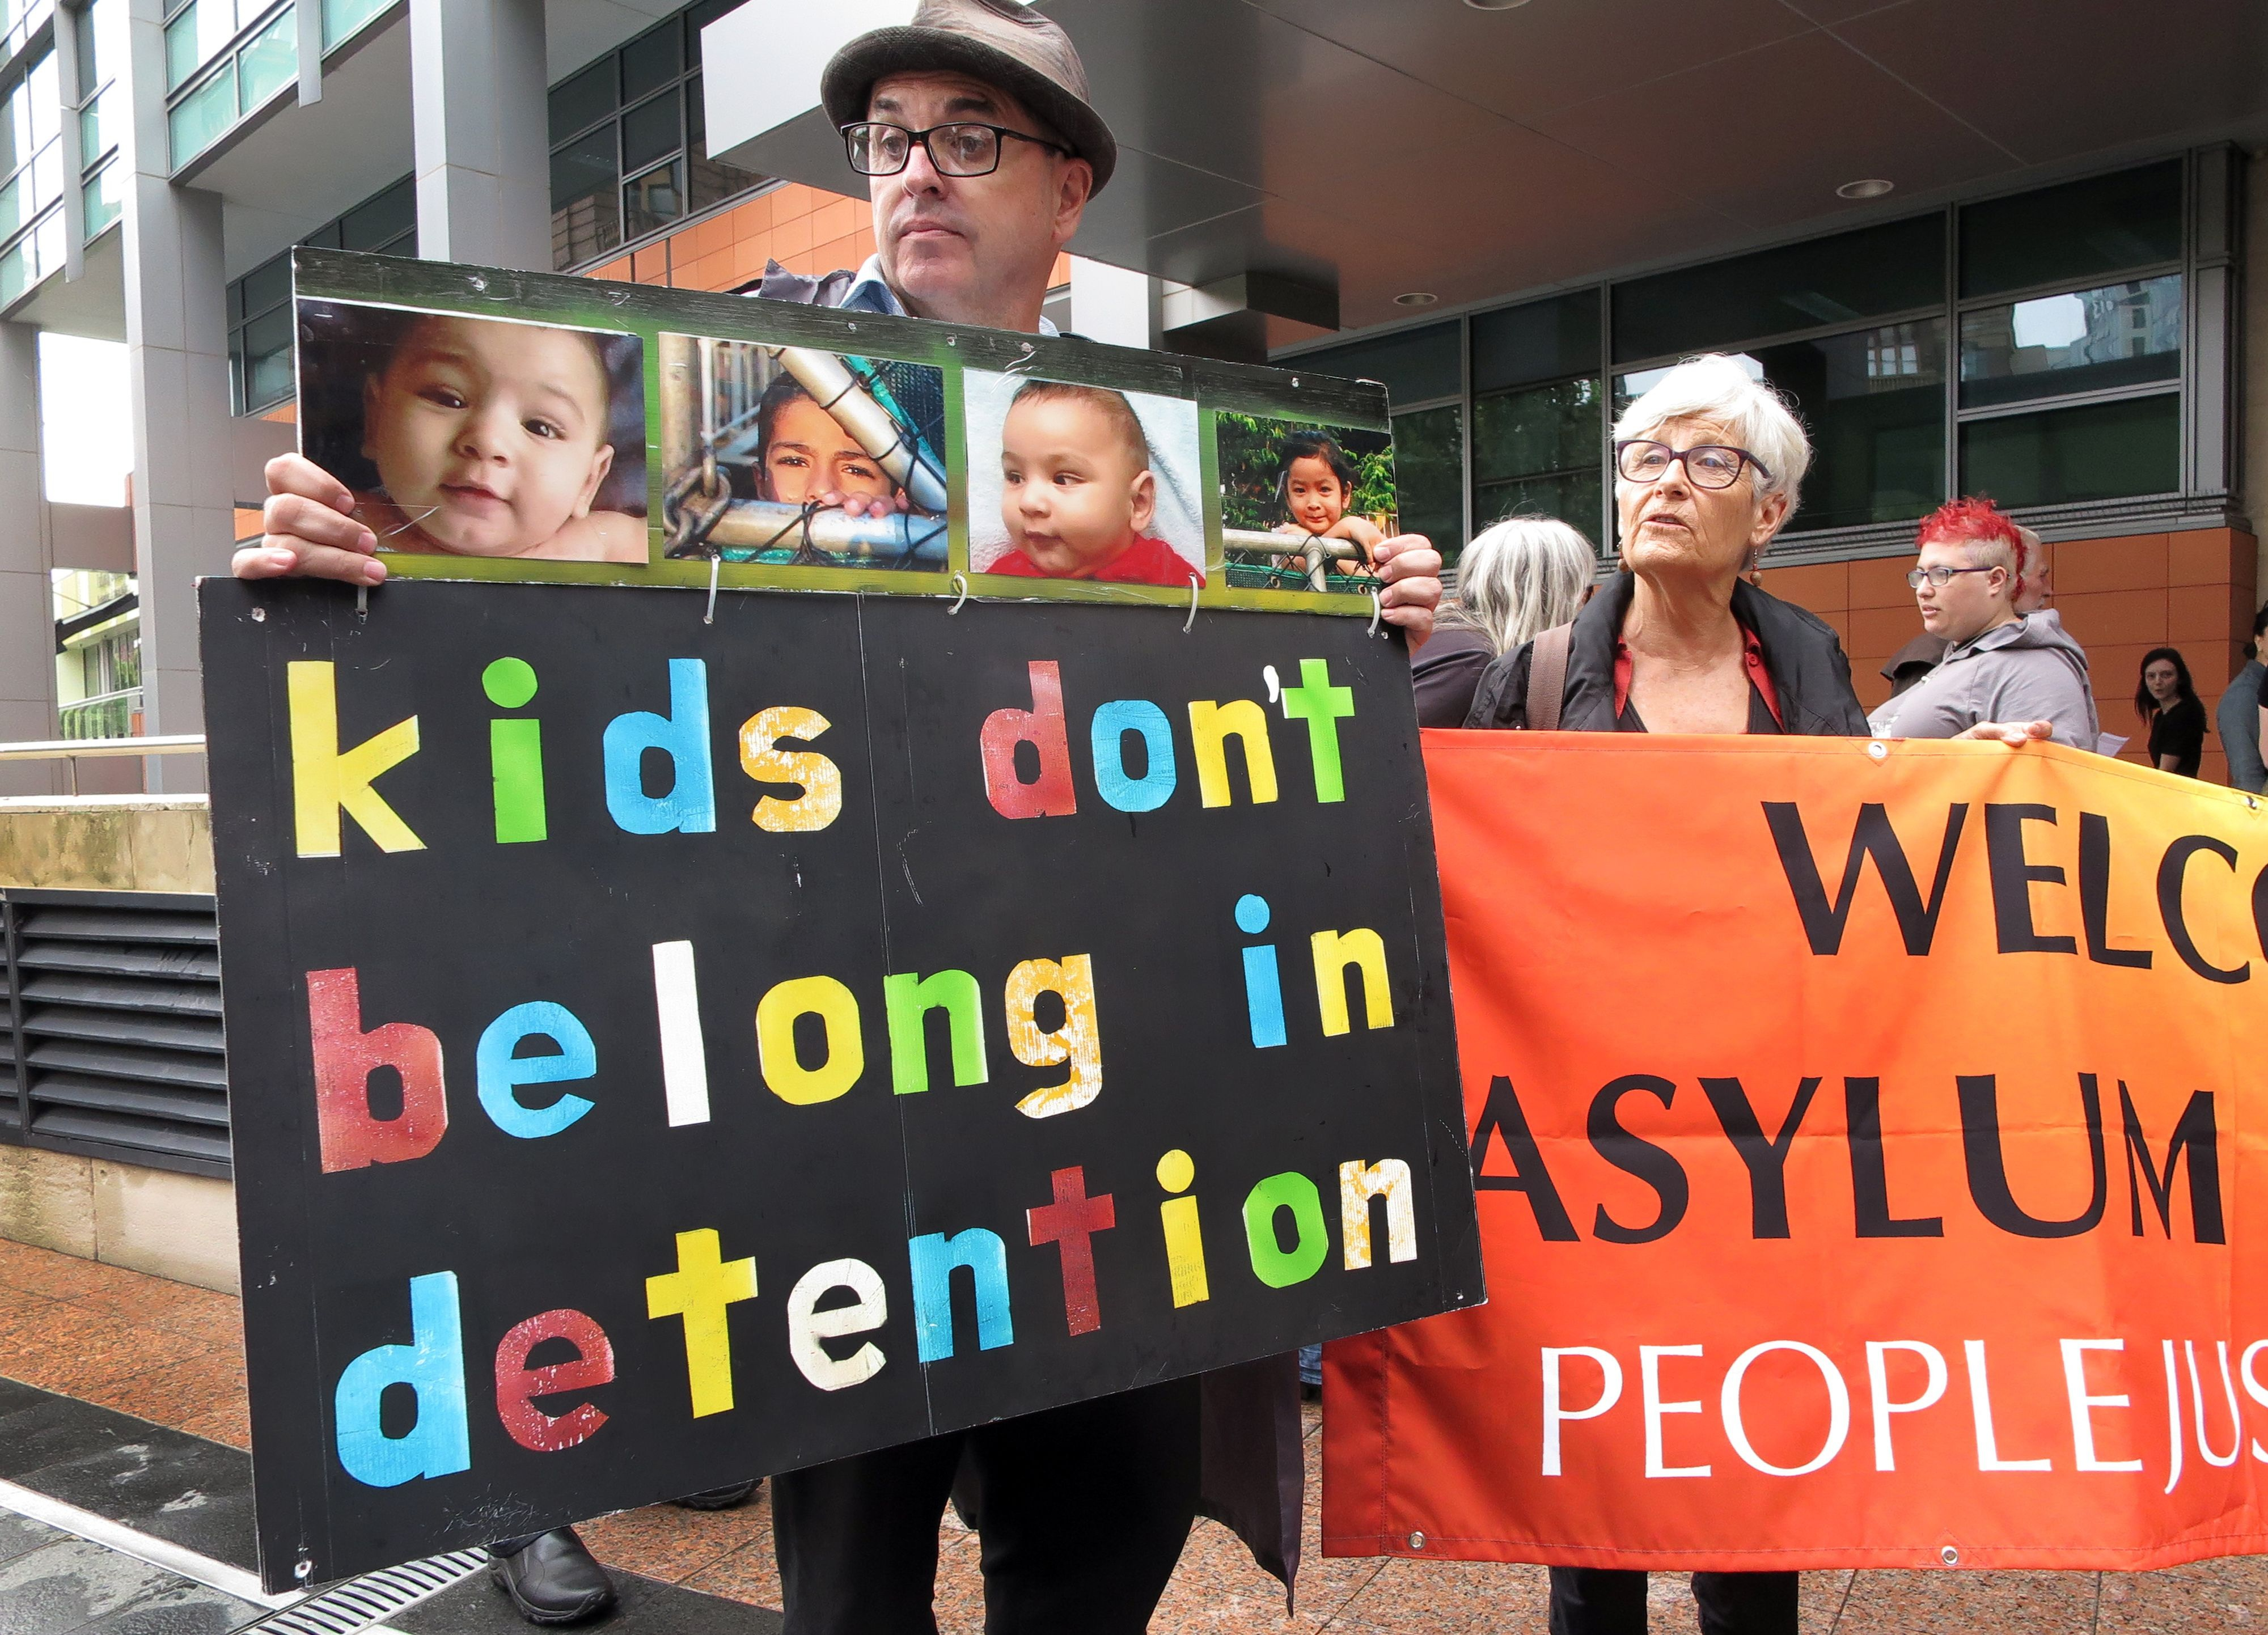 People hold placards at a protest outside an immigration office in Sydney on Feb. 4, 2016